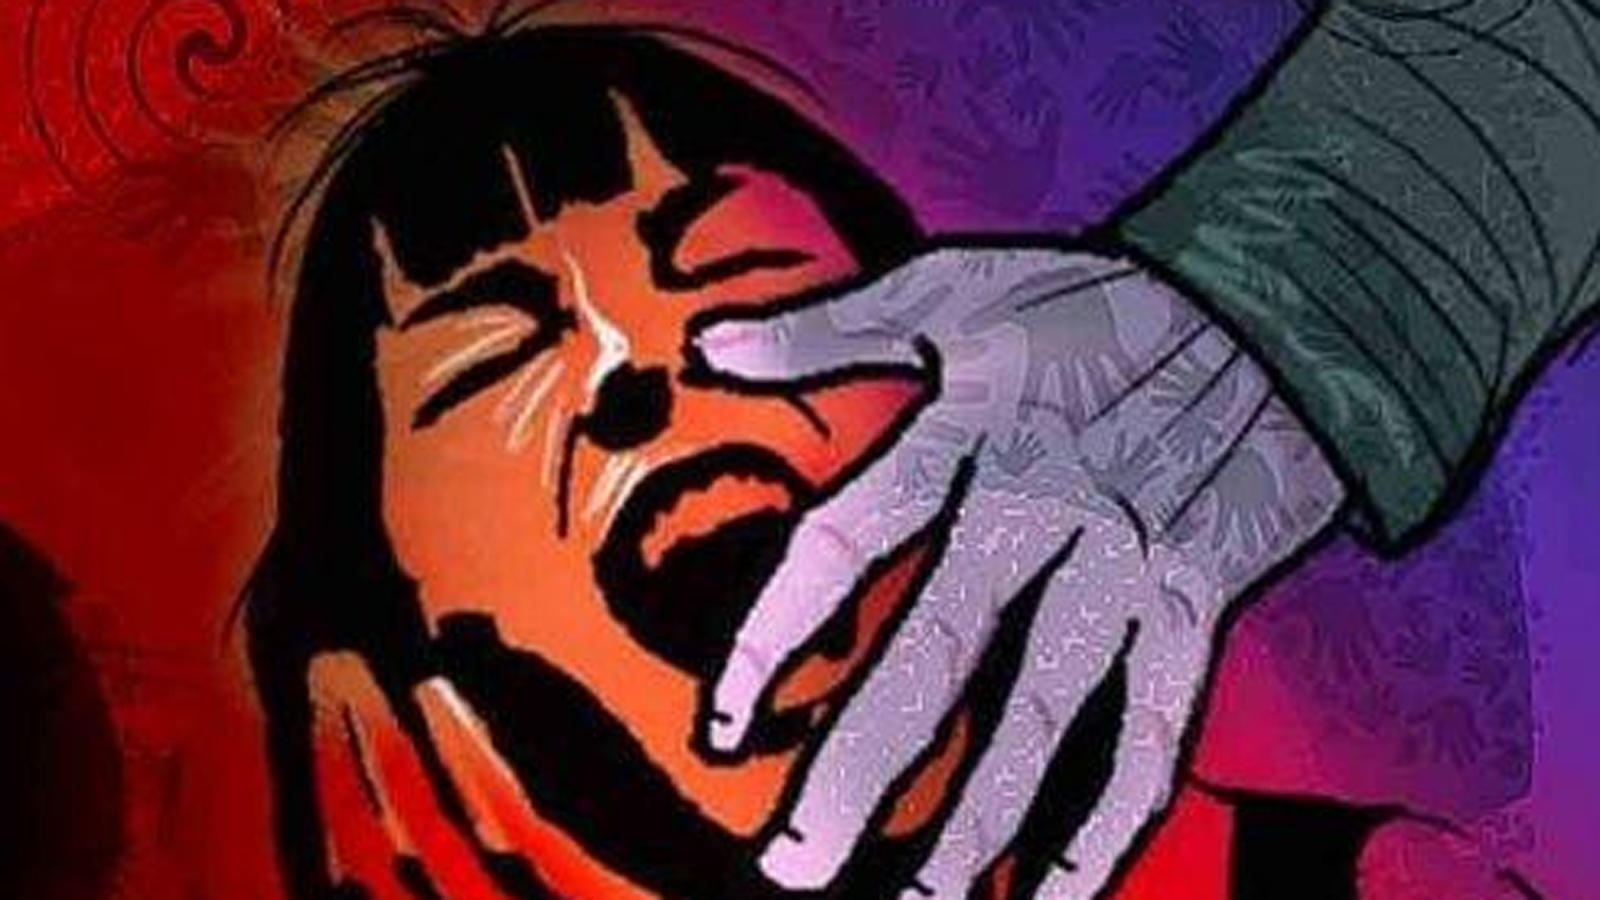 up-ntpc-official-arrested-for-allegedly-raping-11-year-old-girl